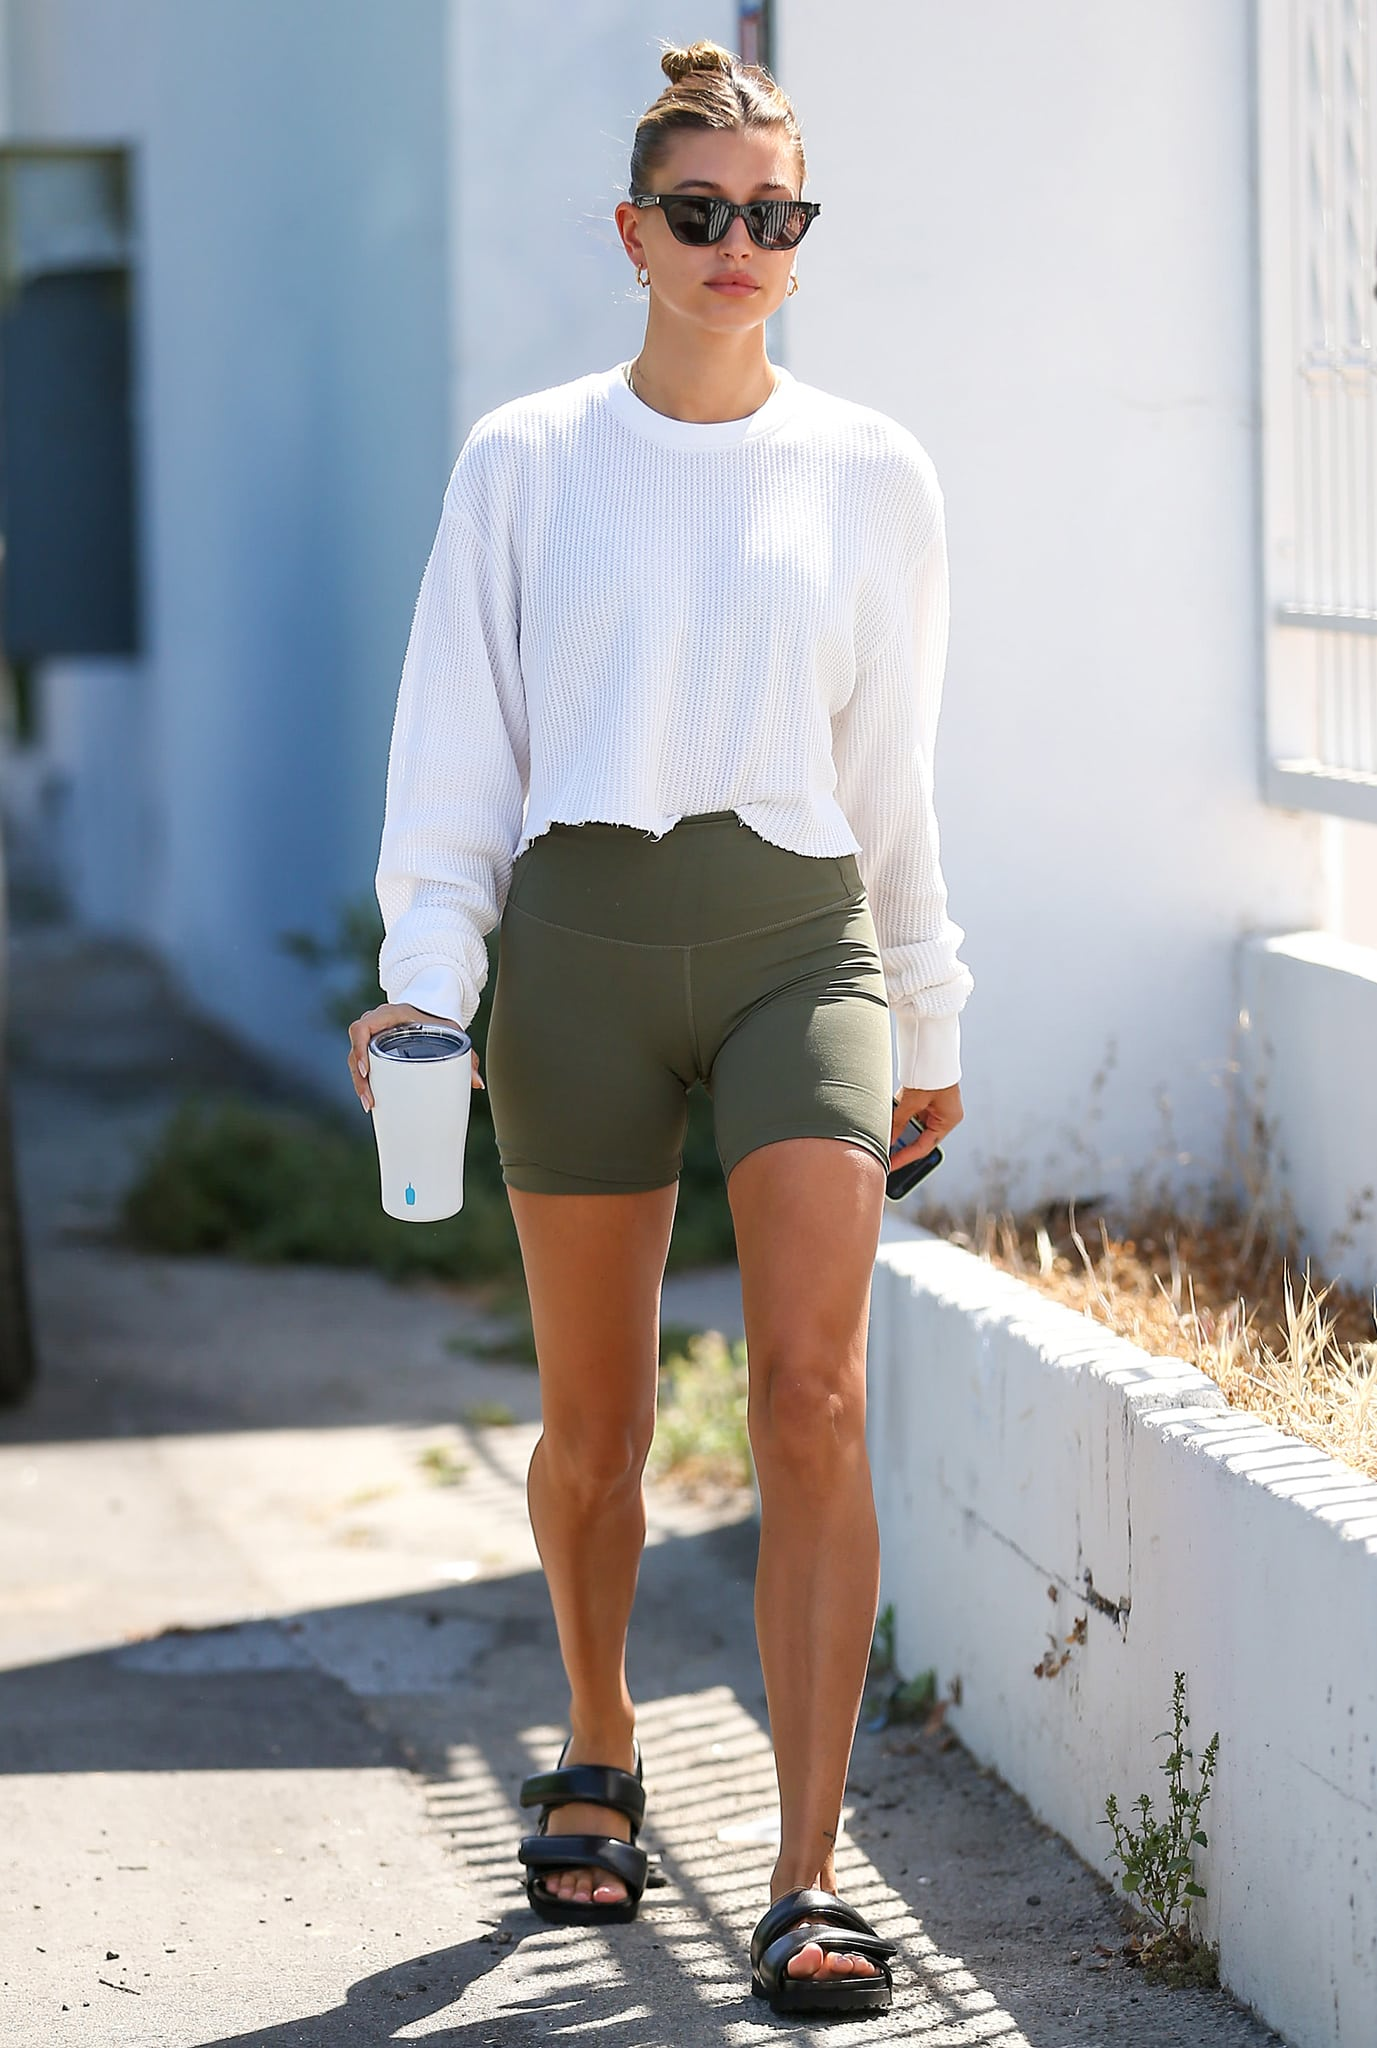 Hailey Bieber layers up with Brandy Melville's Camila thermal ribbed white top